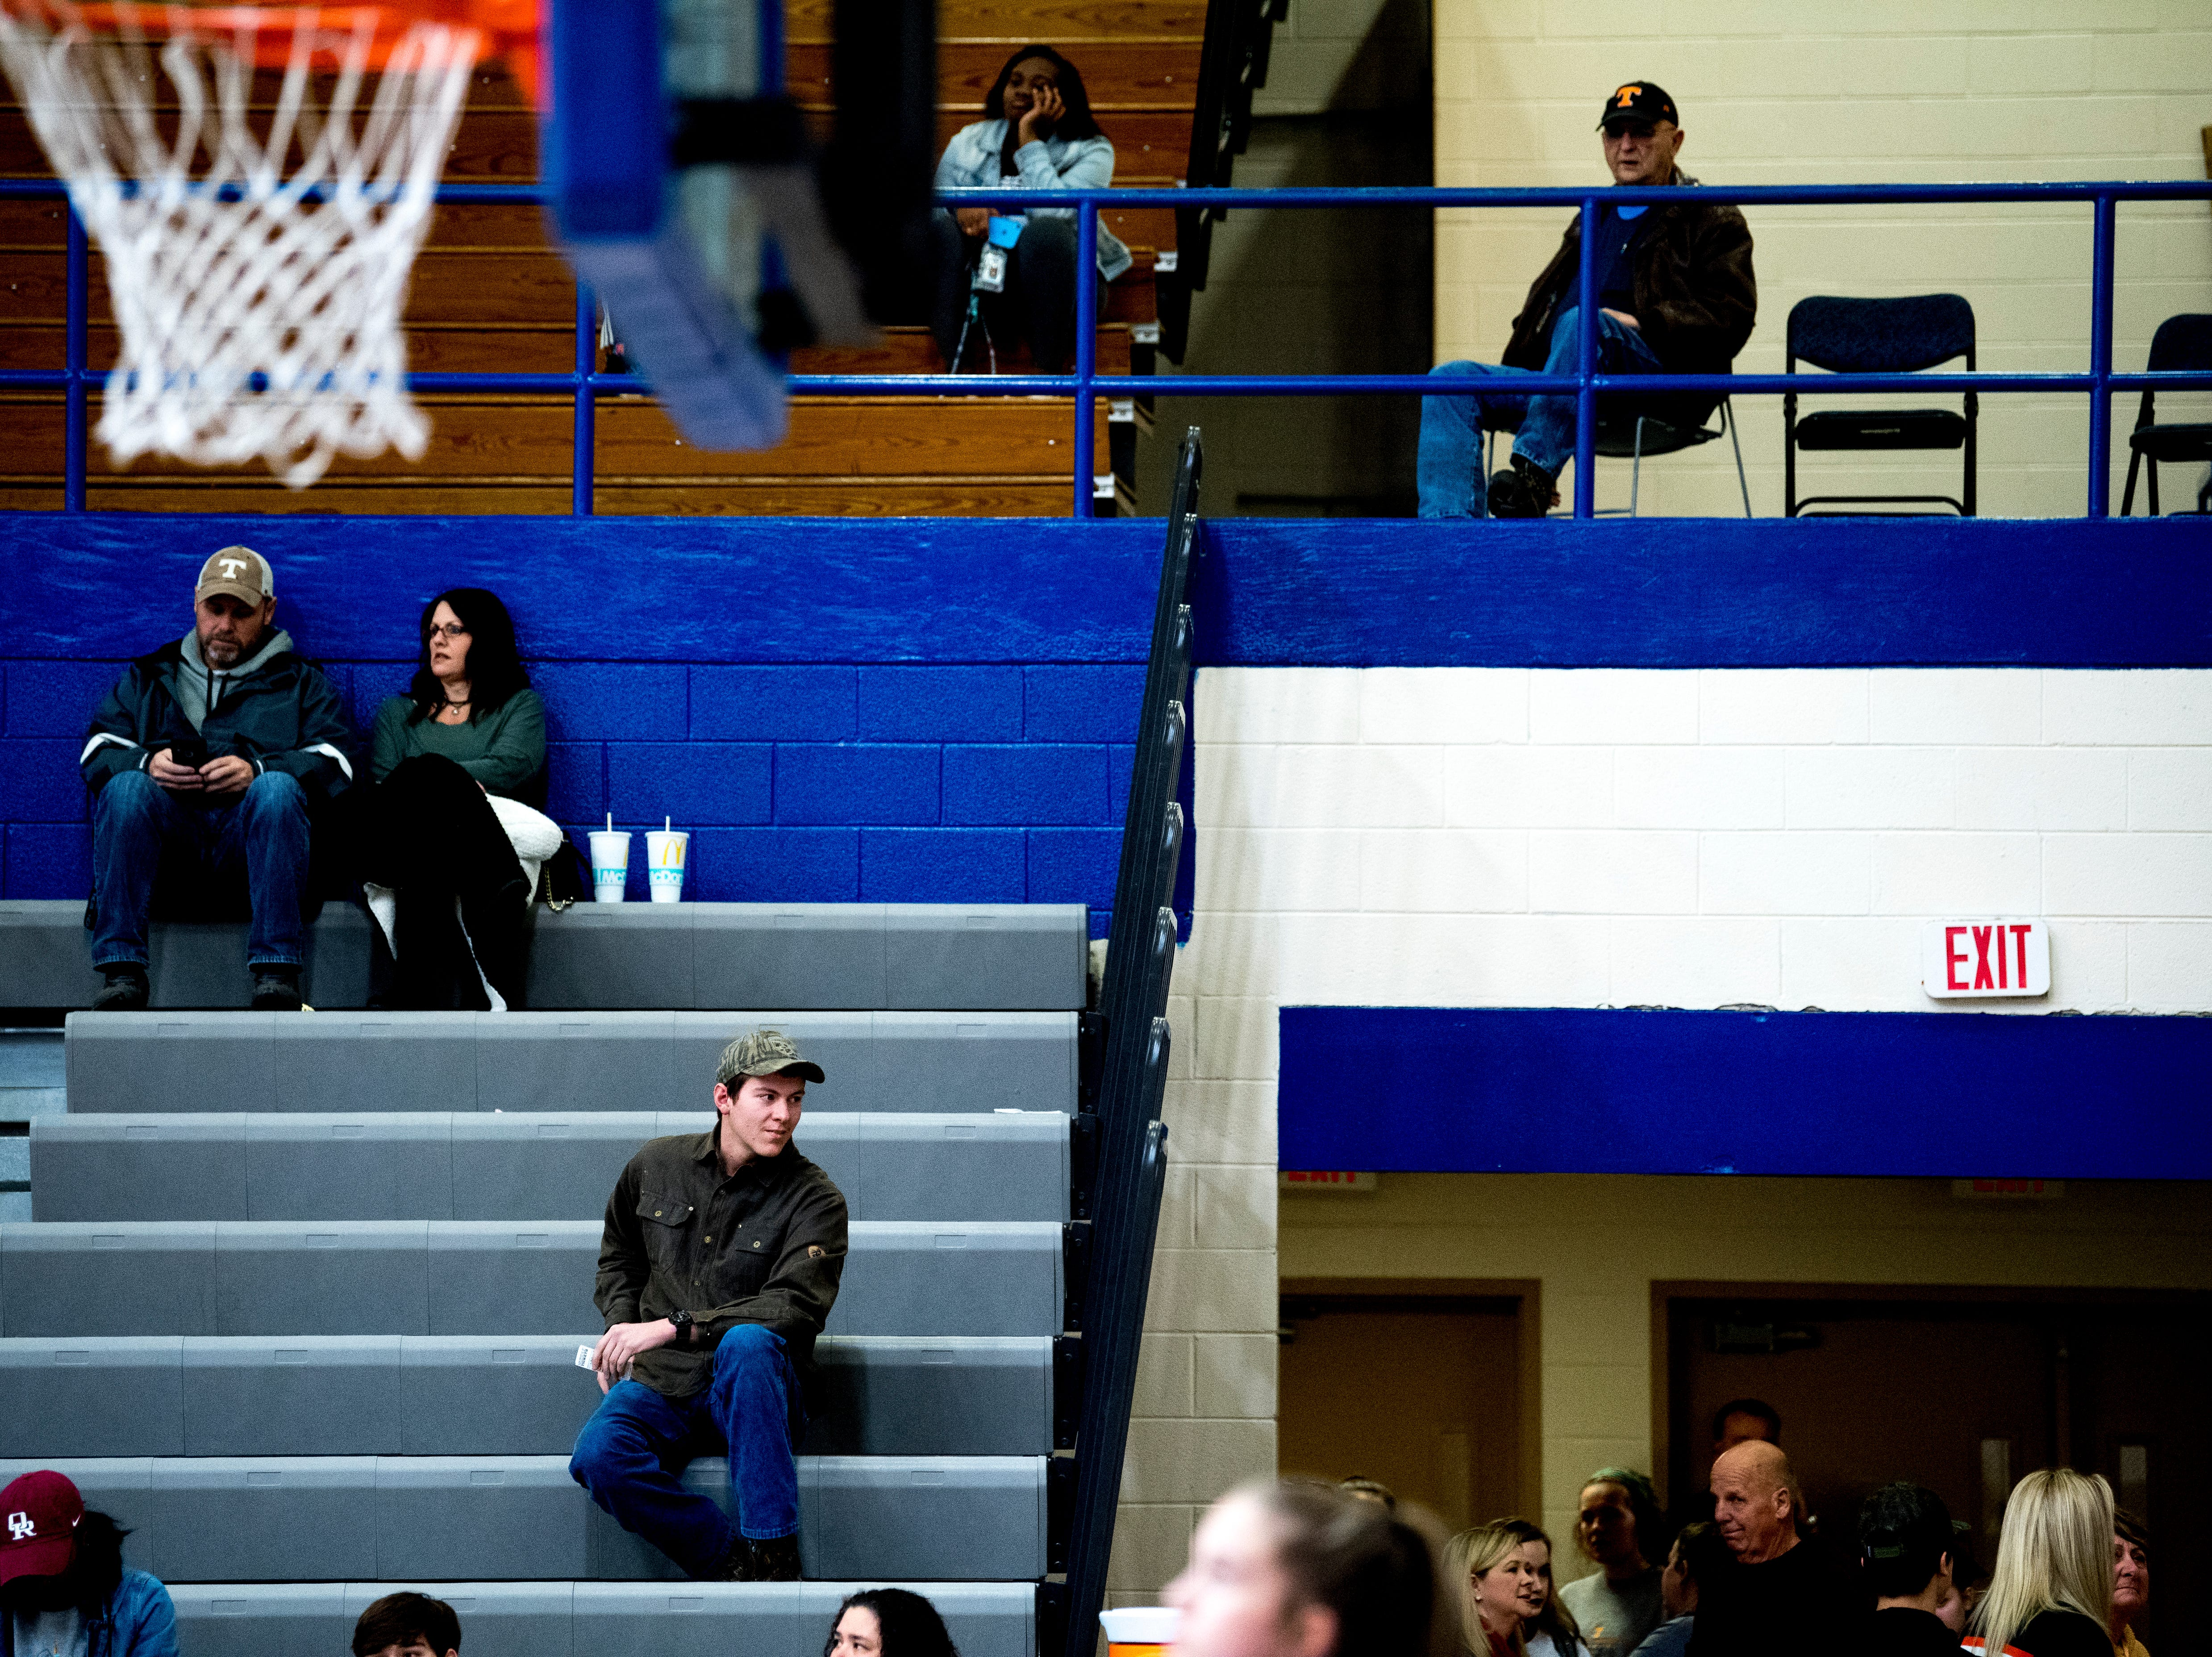 Fans find their seats during a semifinal game at Karns High School in Knoxville, Tennessee on Saturday, February 16, 2019.